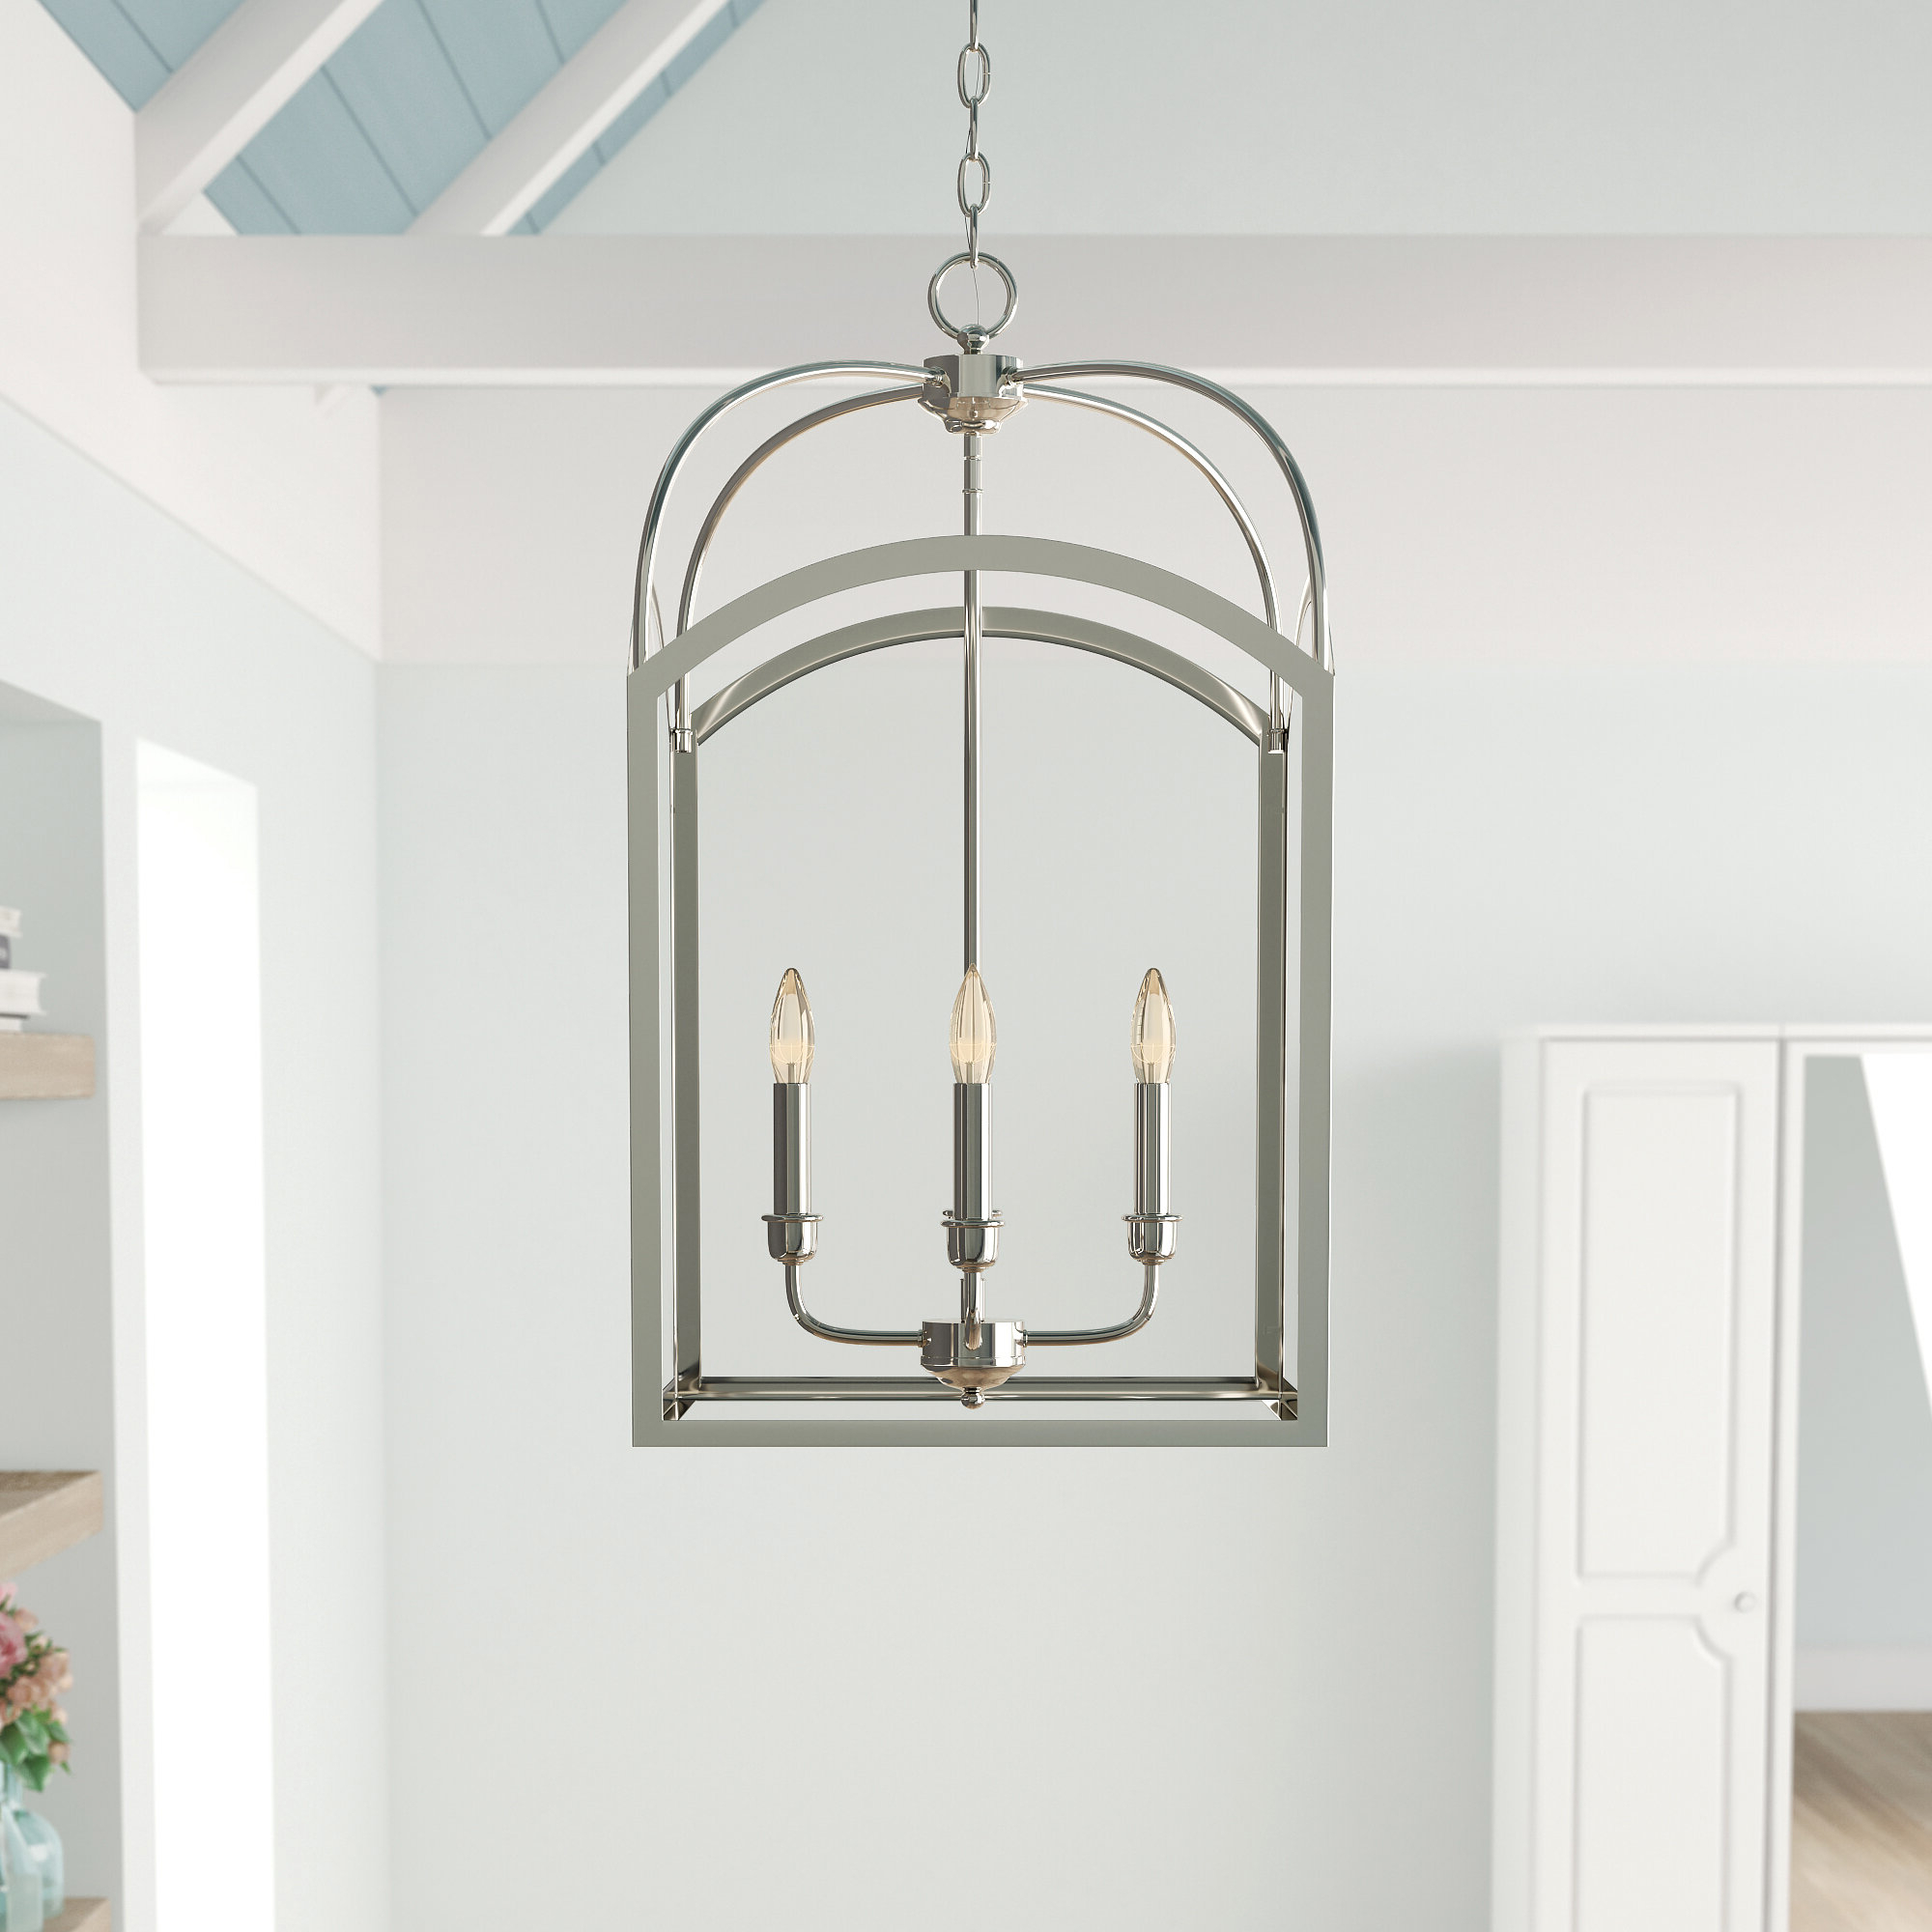 Mount Airy 4 Light Lantern Geometric Pendant With Popular Taya 4 Light Lantern Square Pendants (View 7 of 20)